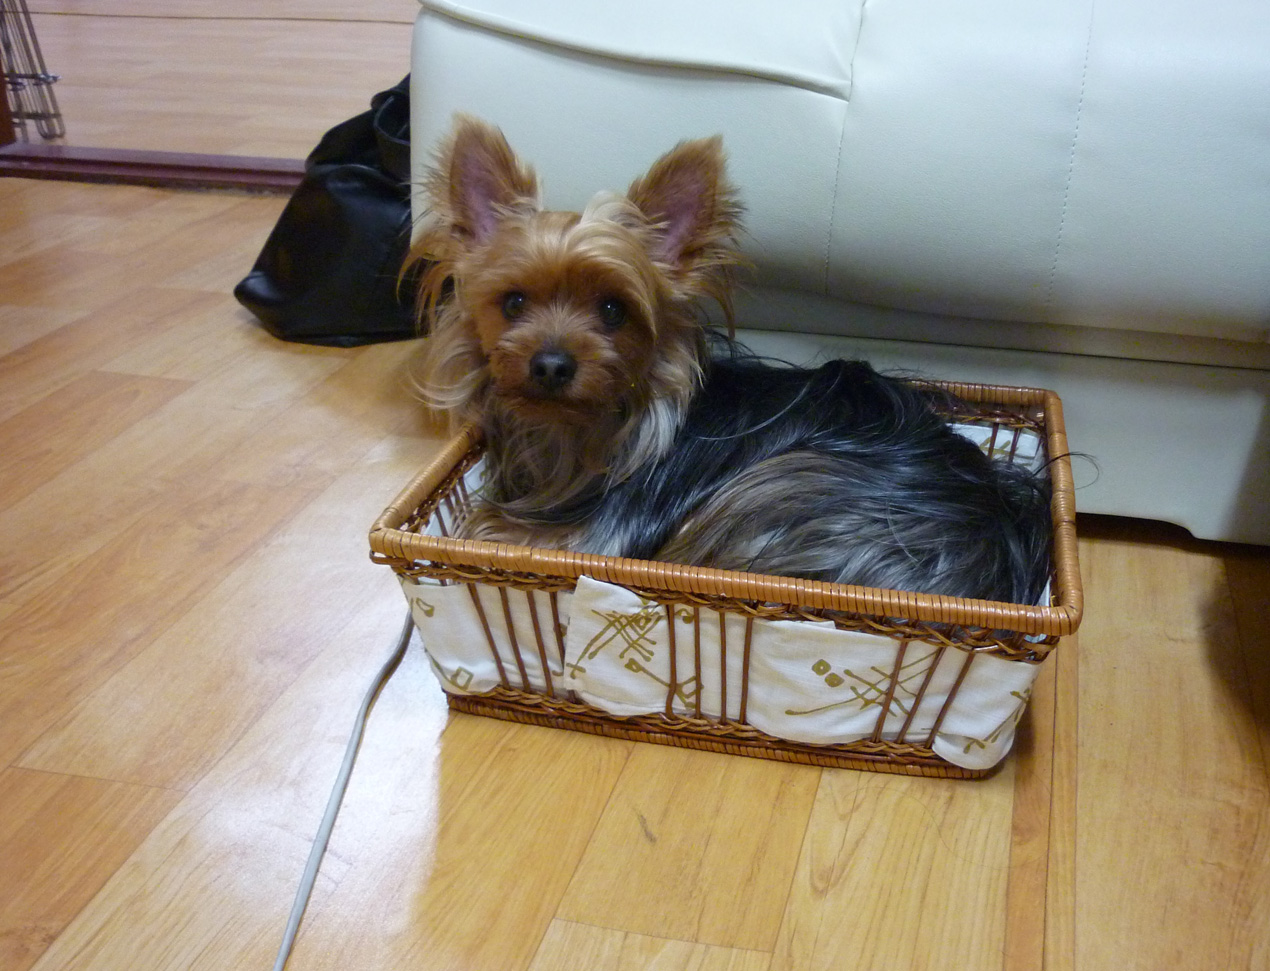 Little Barney has decided that our clean socks basket makes a nice home. Crazy!